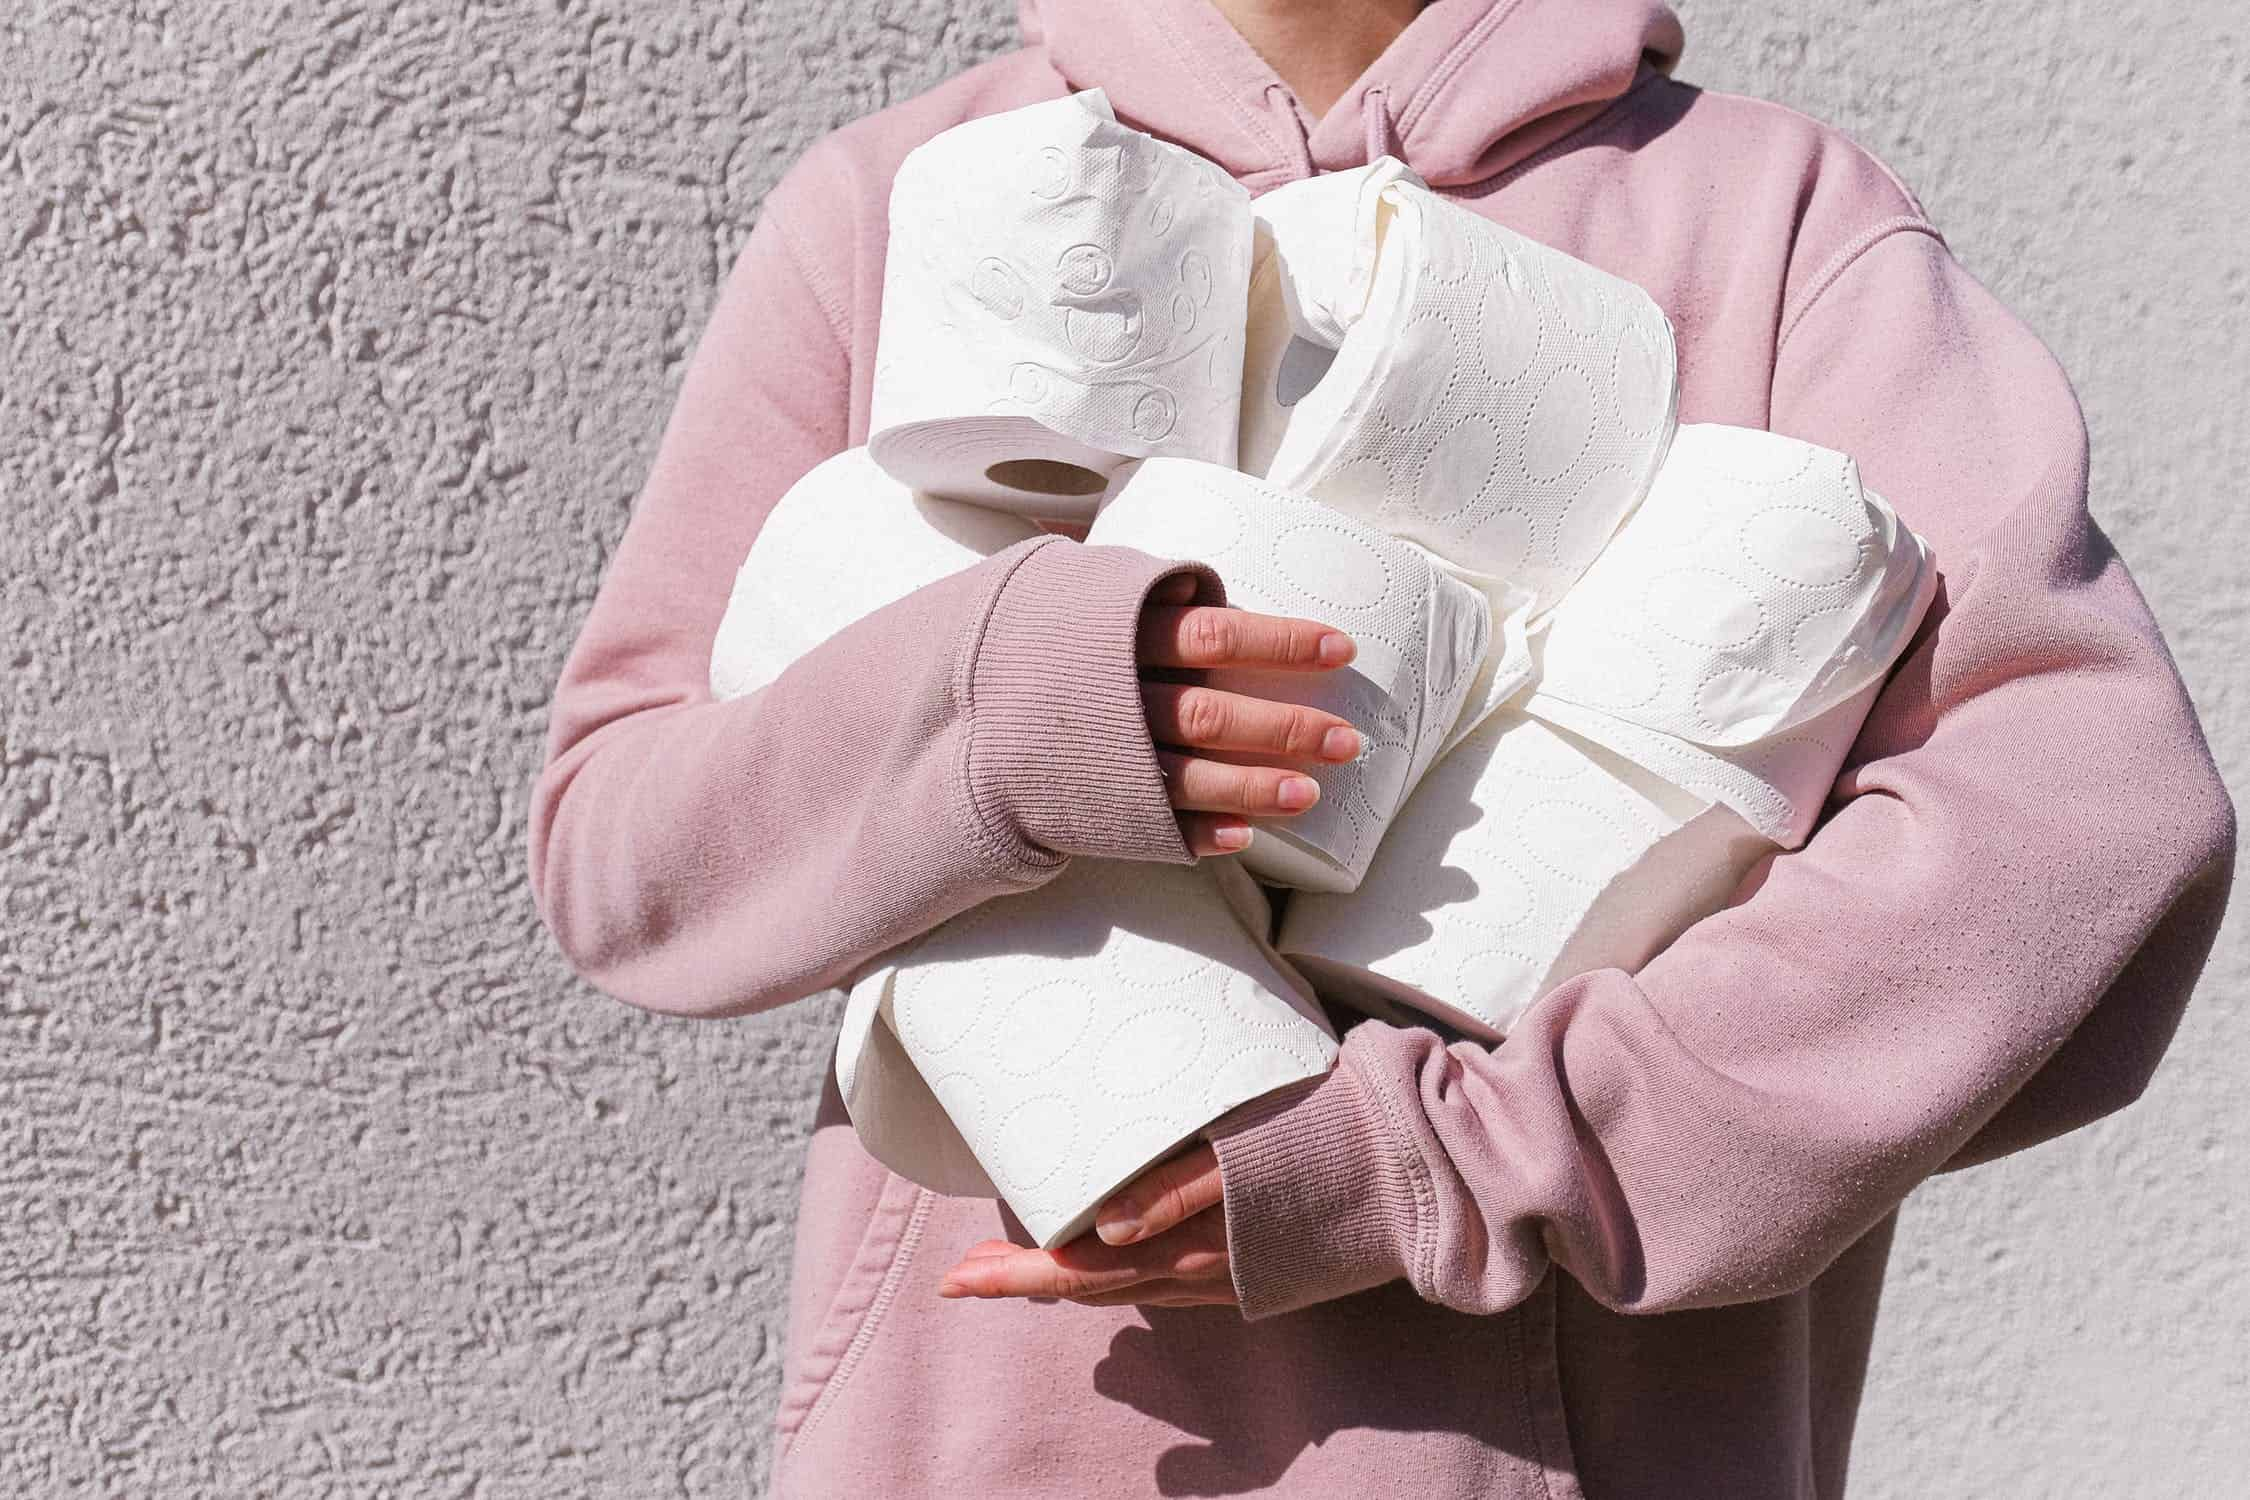 Person in a pink sweater grasping toilet paper rolls.